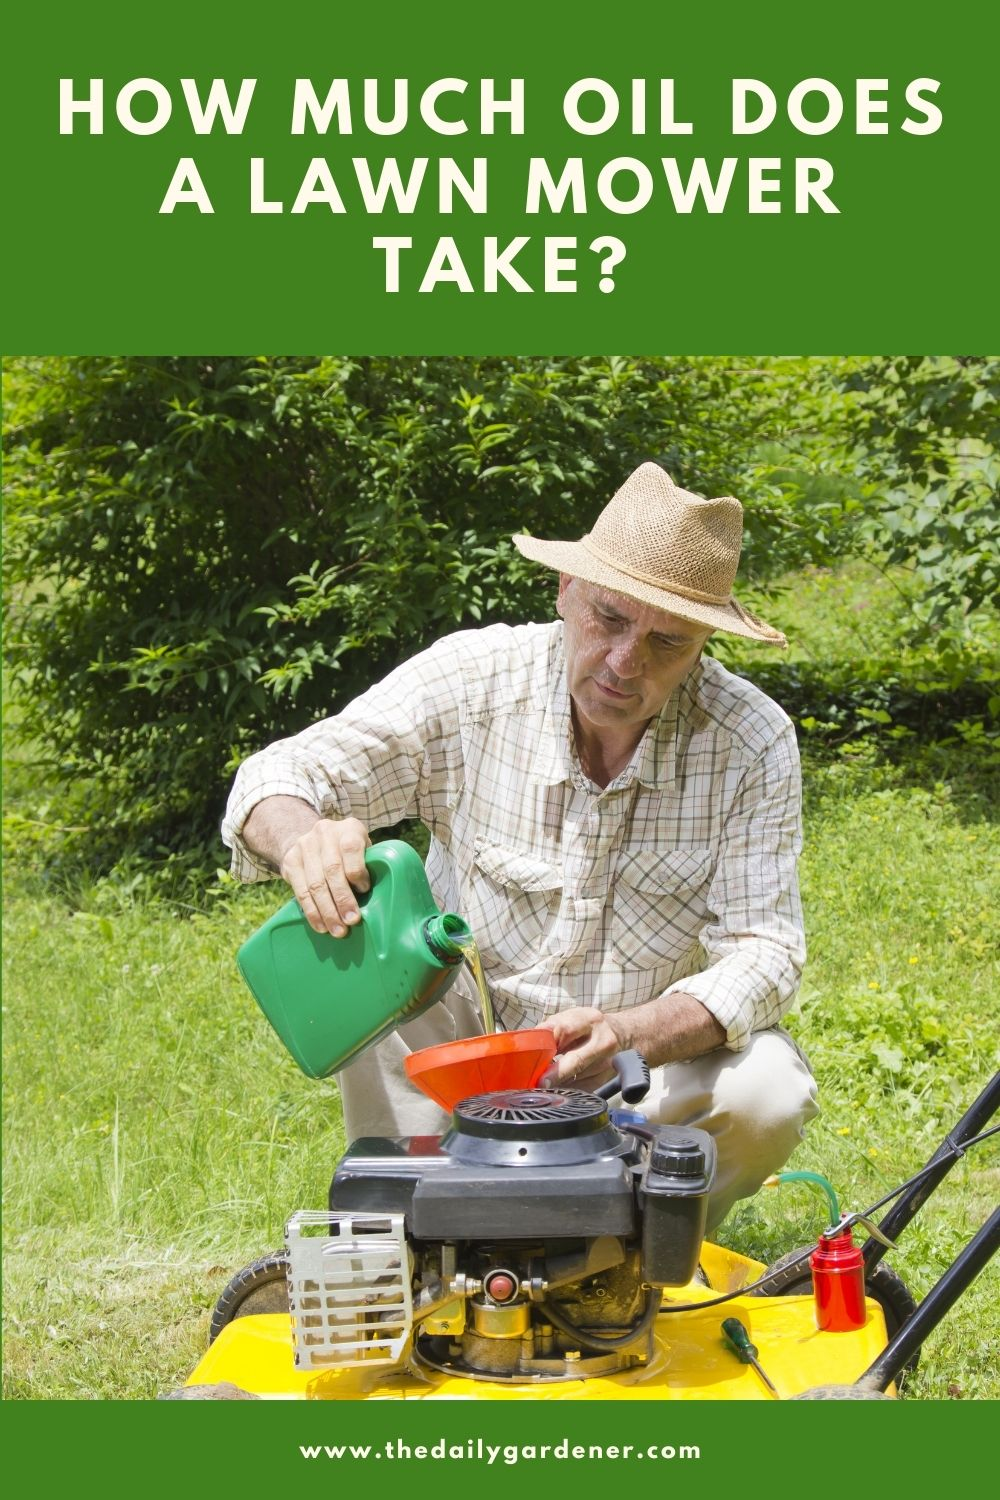 How Much Oil Does a Lawn Mower Take 1